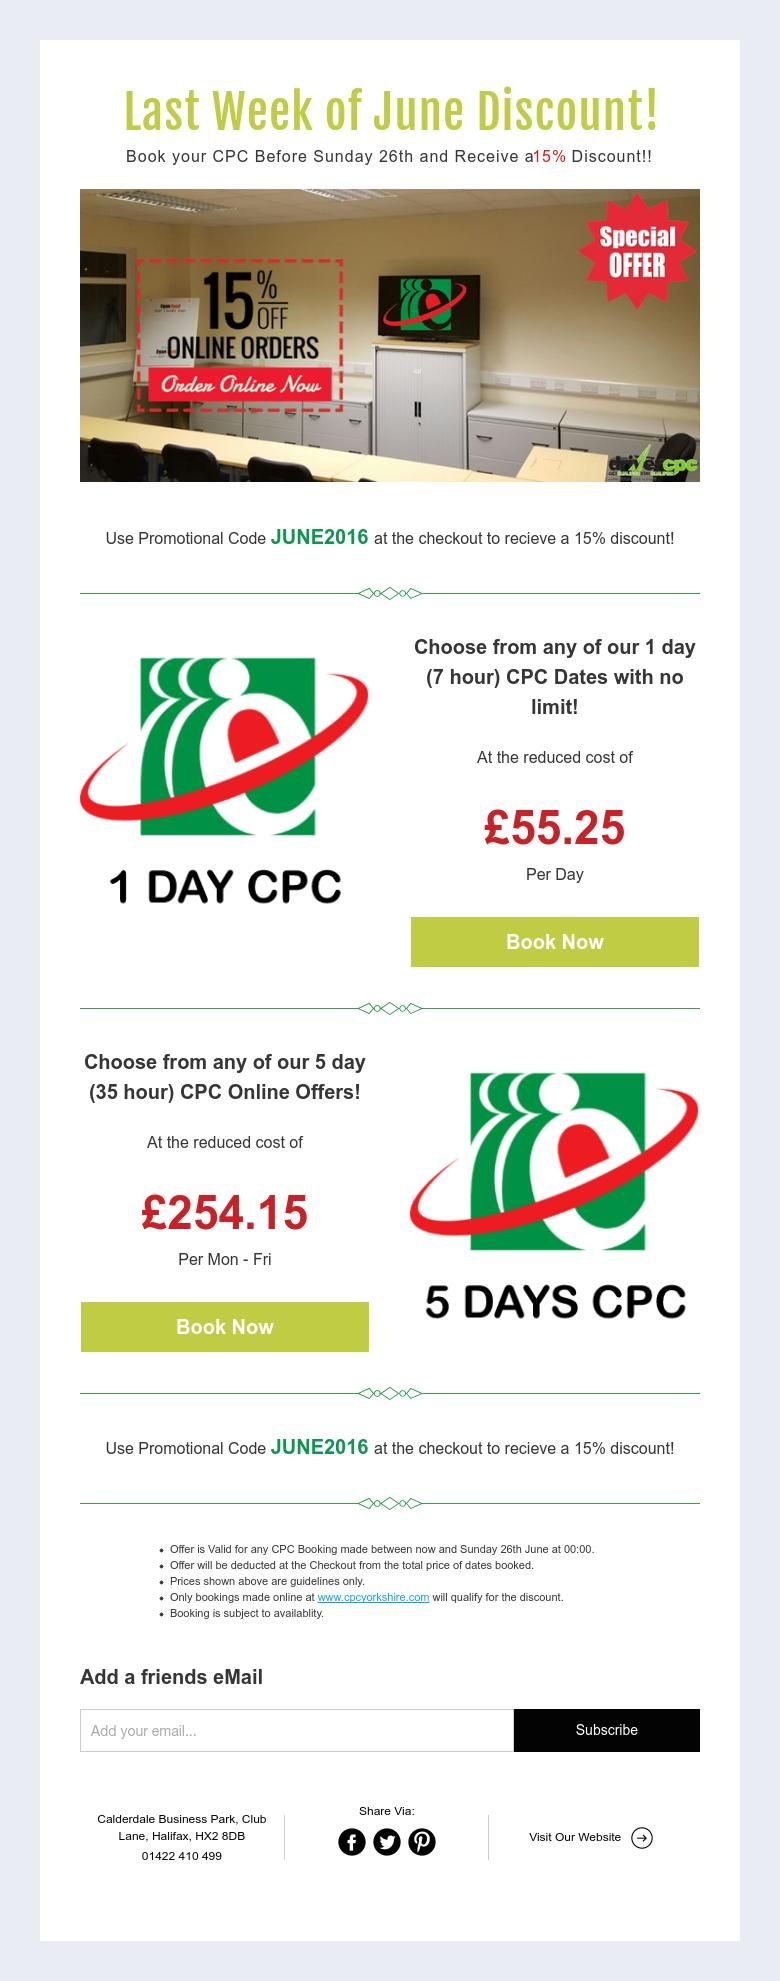 Last Week of June Discount!  Book your CPC Before Sunday 26th and Receive a 15% Discount!!